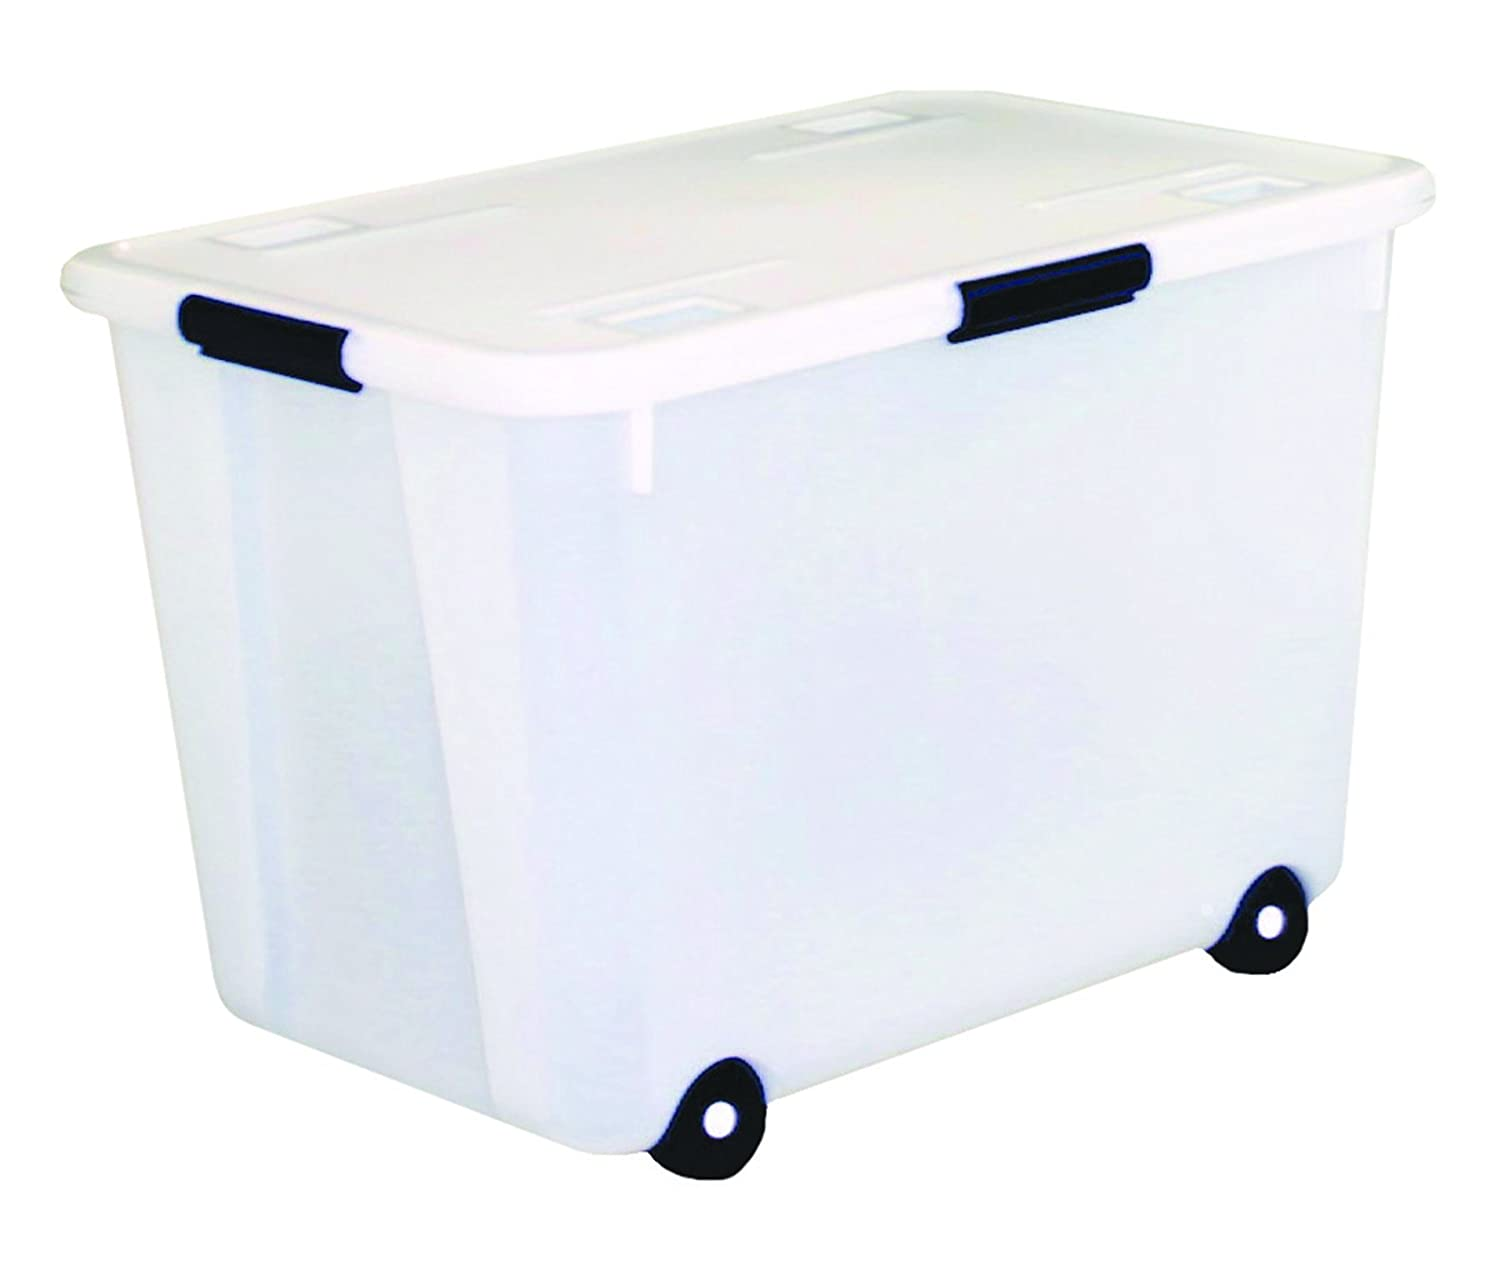 amazoncom advantus rolling storage box with snap lid 15gallon size clear office products